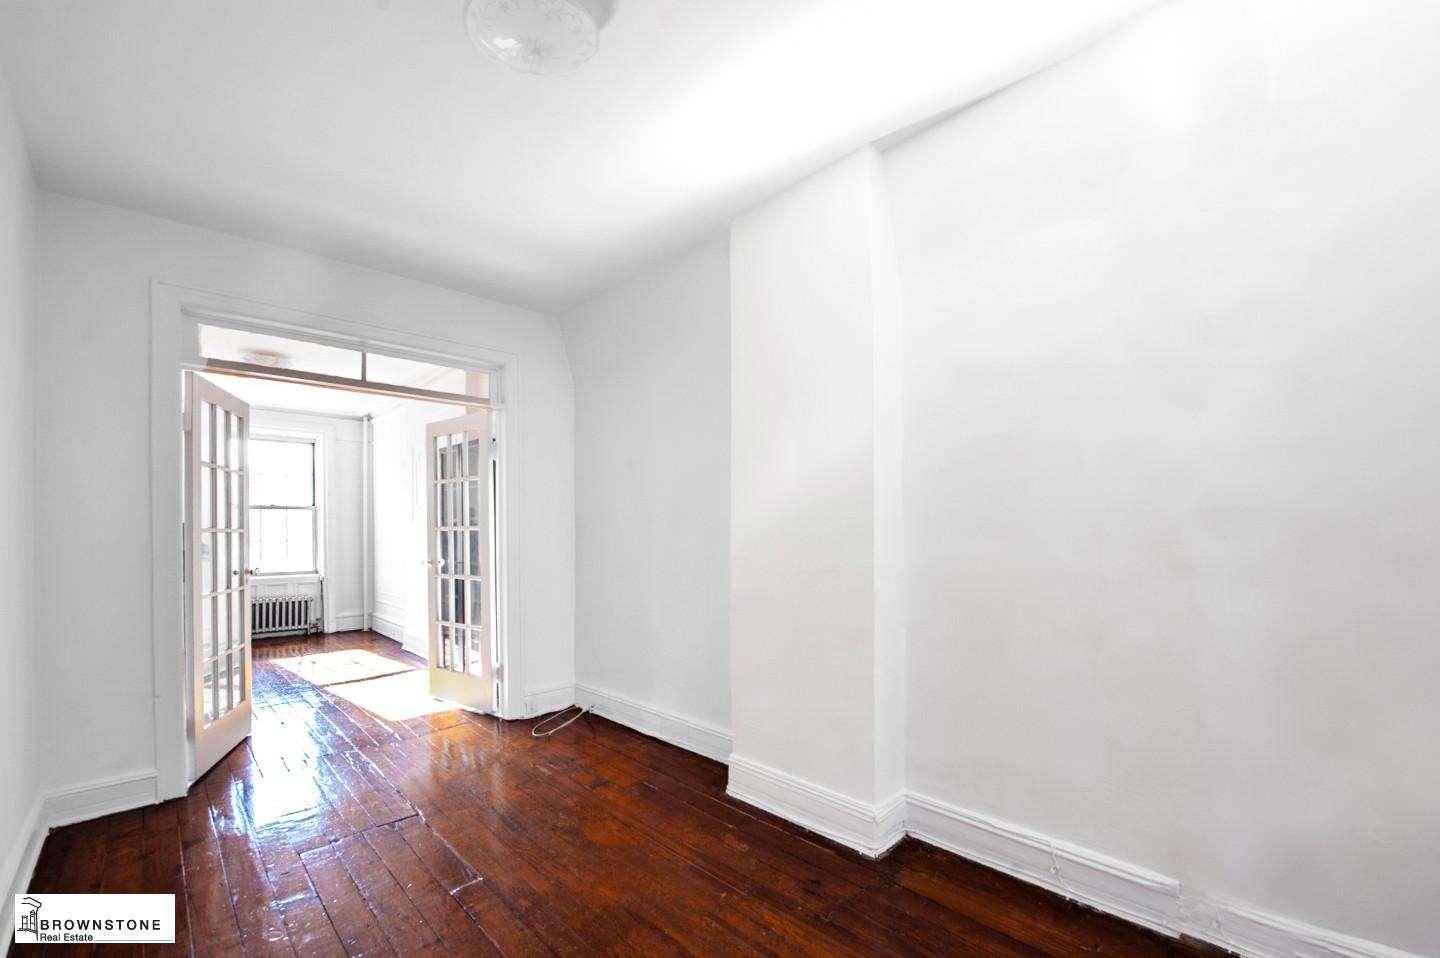 Entry Room / Middle Room